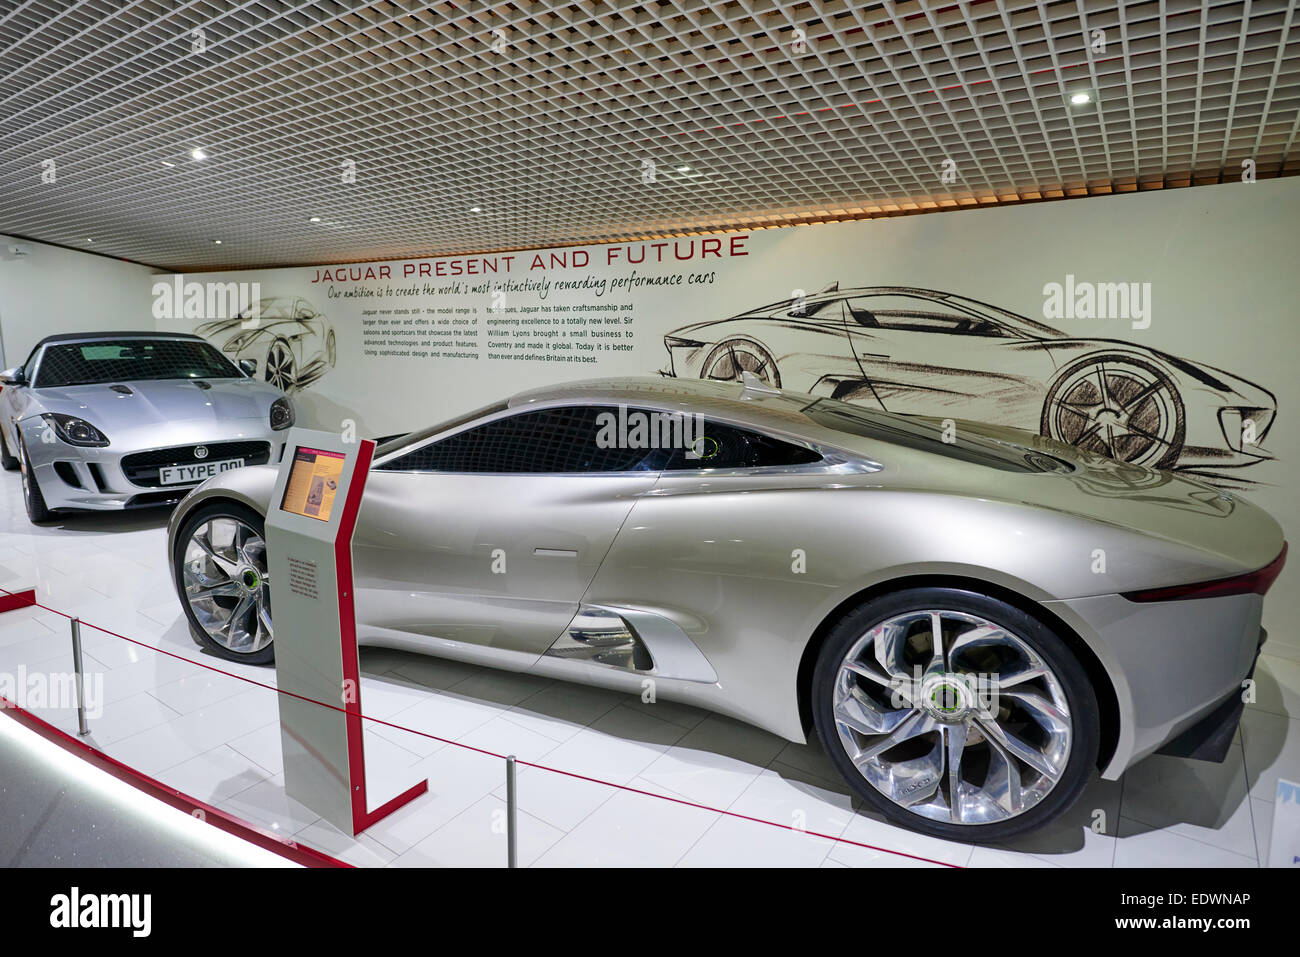 O Jaguar Concept Car Display No Museu Dos Transportes De Coventry UK